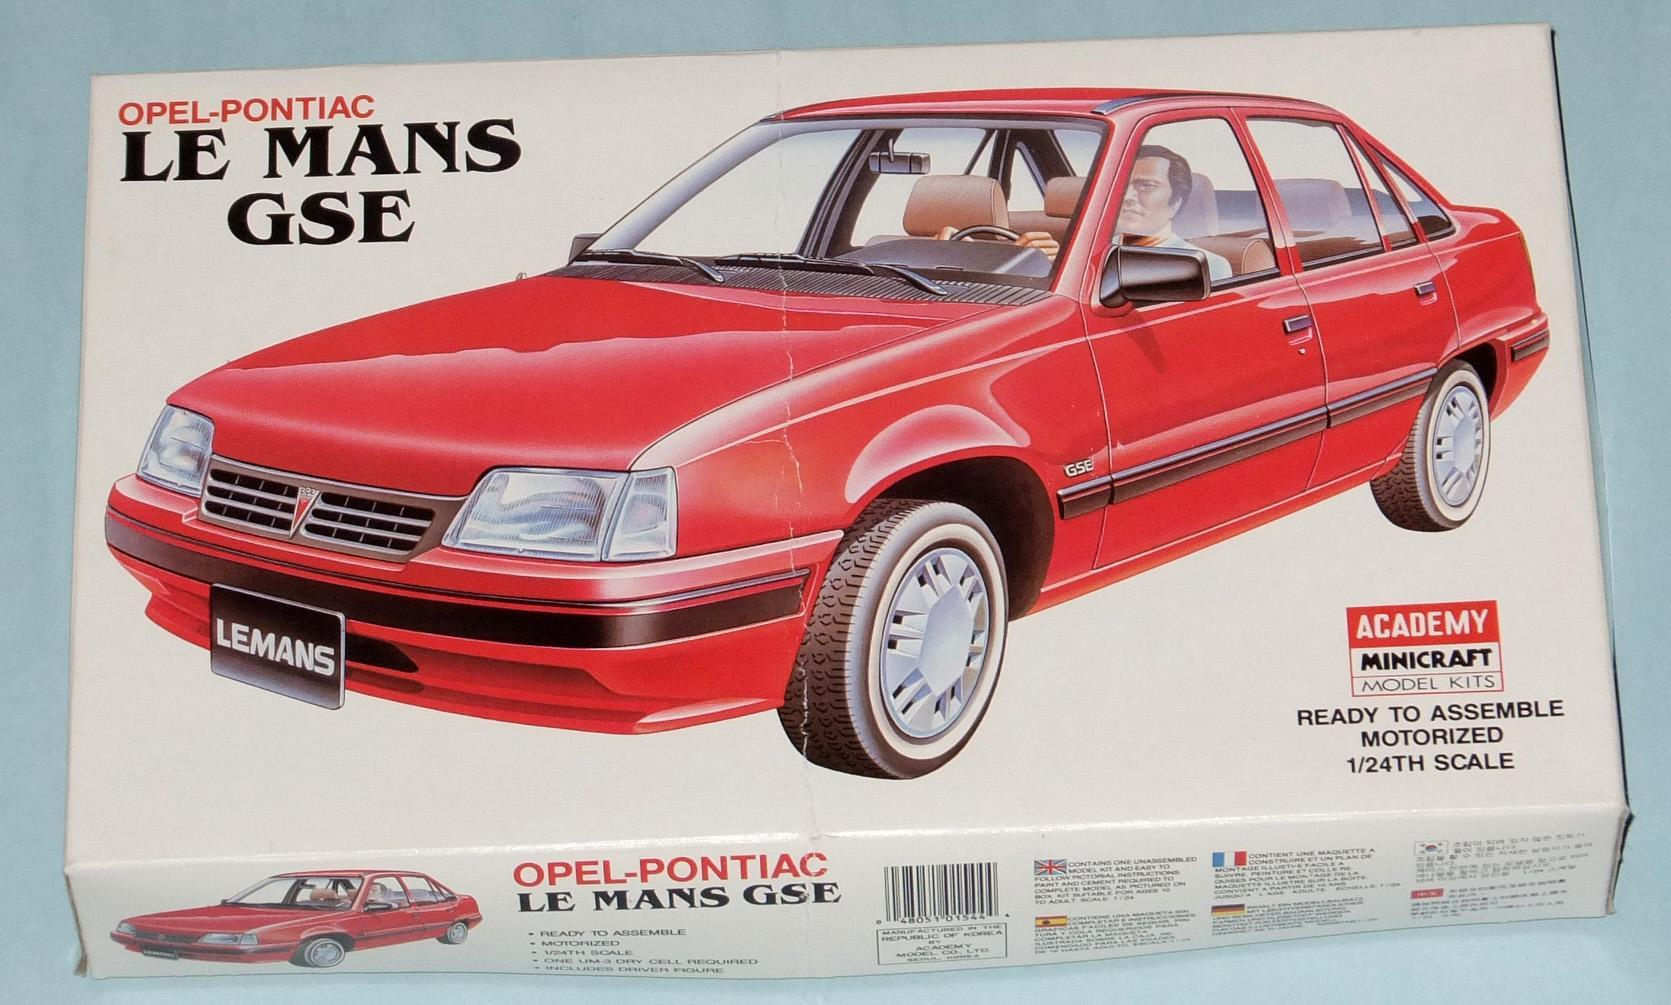 When Badges go bad: Daewoo LeMans out of box - Car Kit News ...